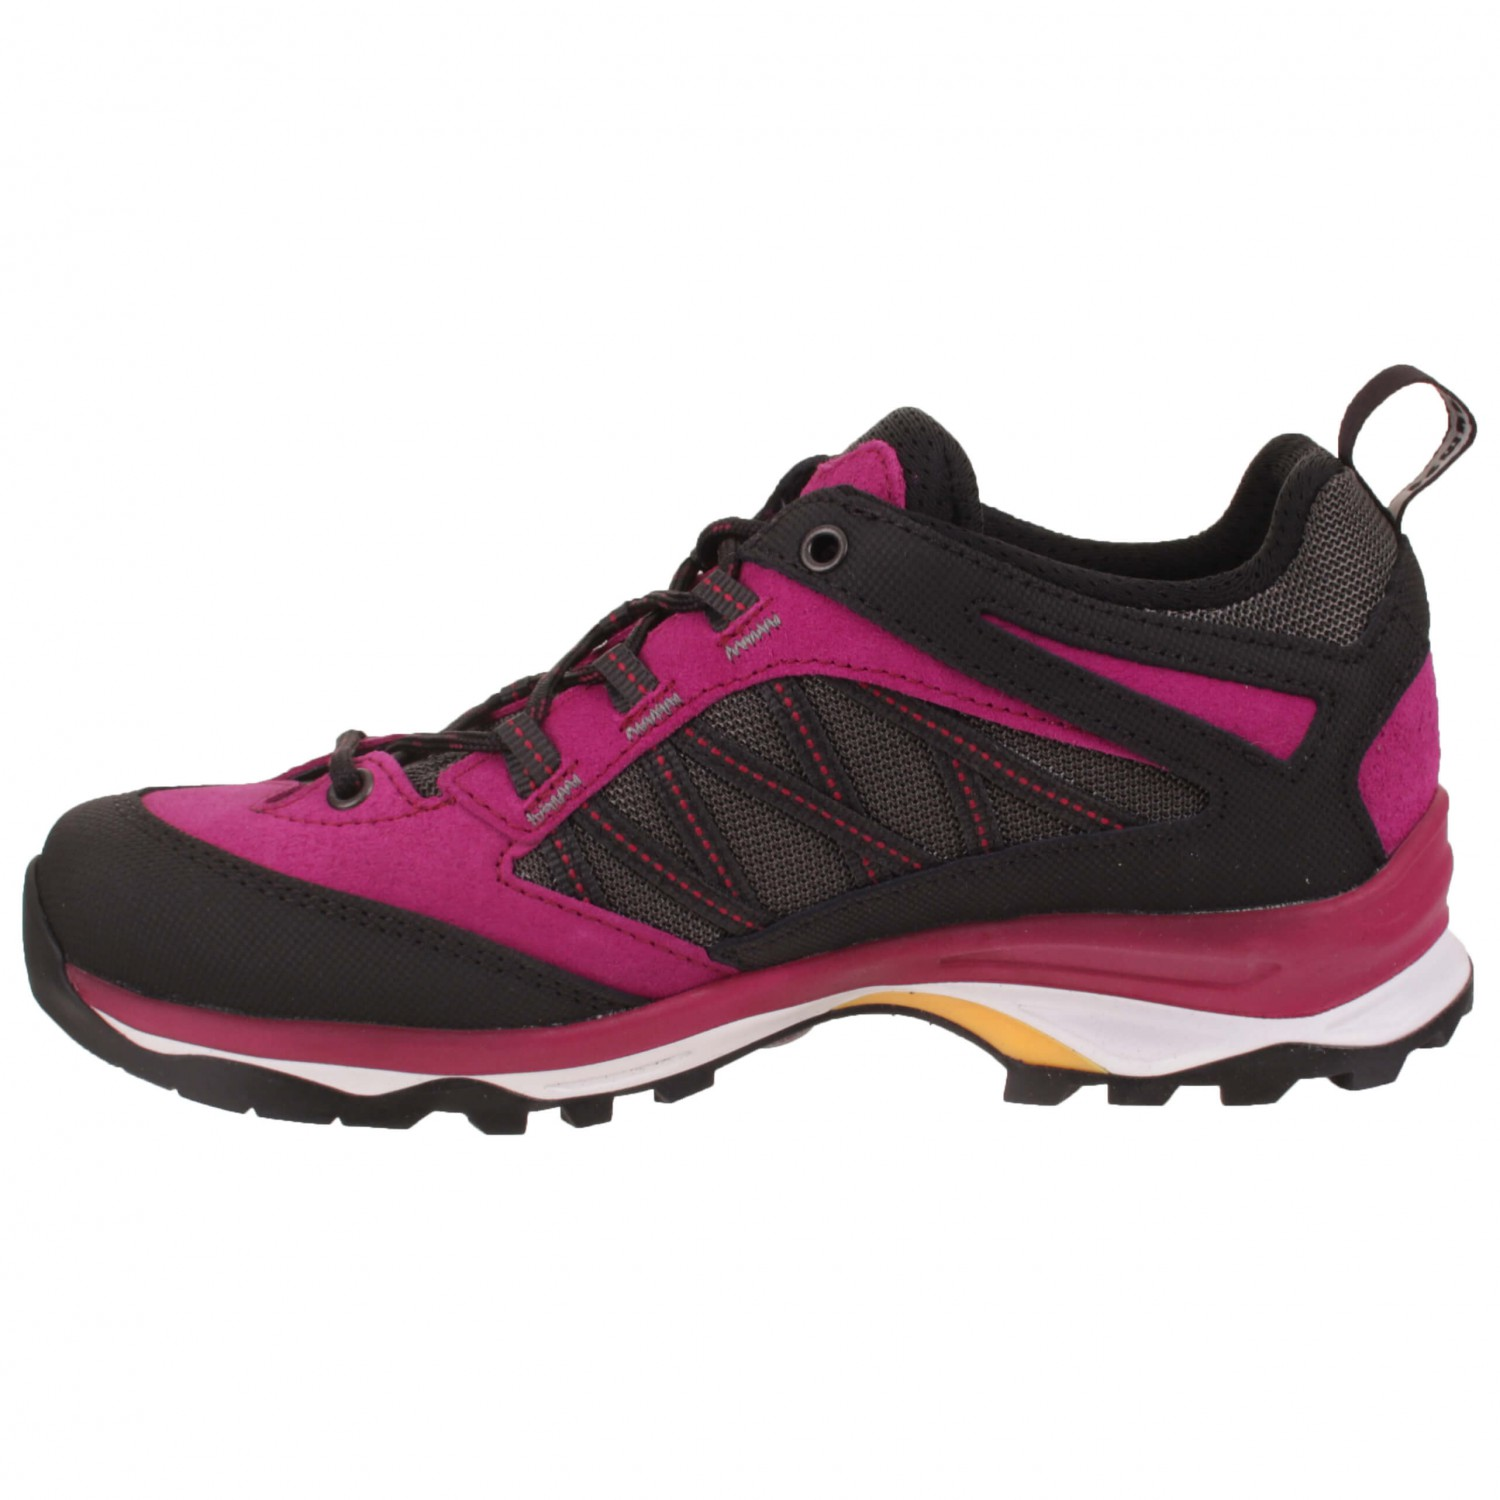 Hanwag Belorado Low Lady GTX fuchsia vbfvpo